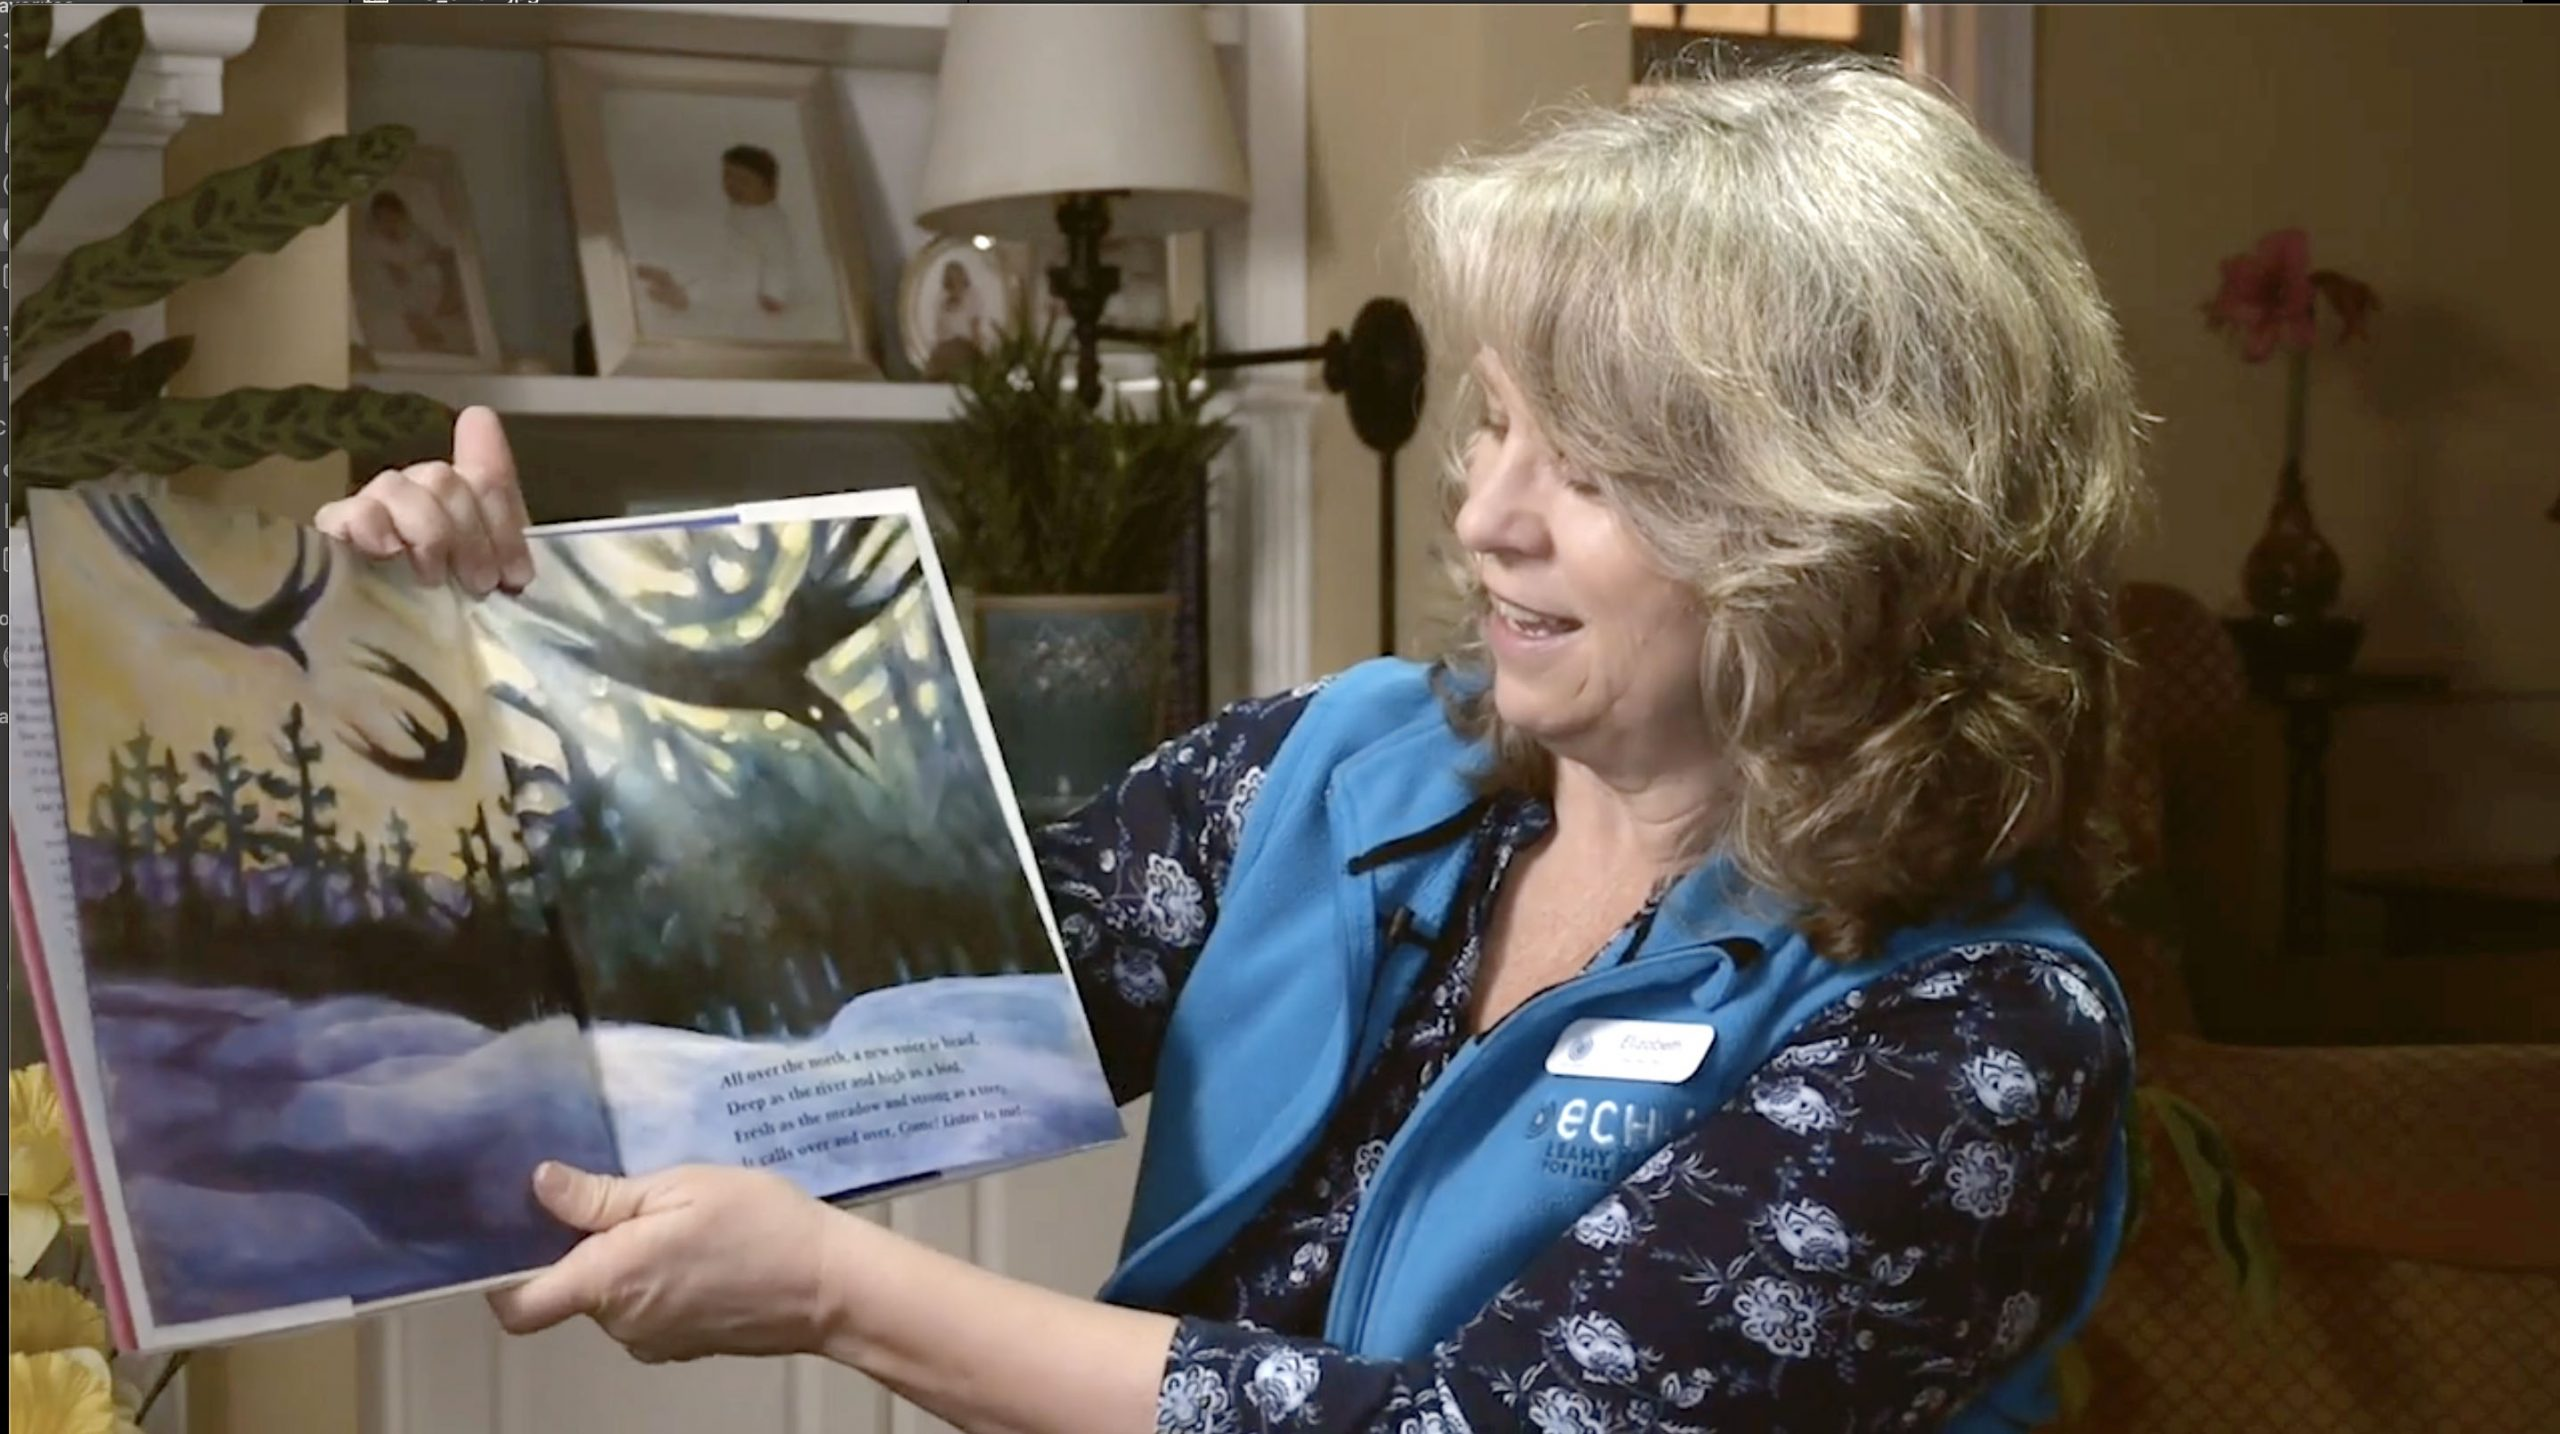 Elizabeth with blonde hair and blue ECHO Vest holds up the book she is reading about spring.